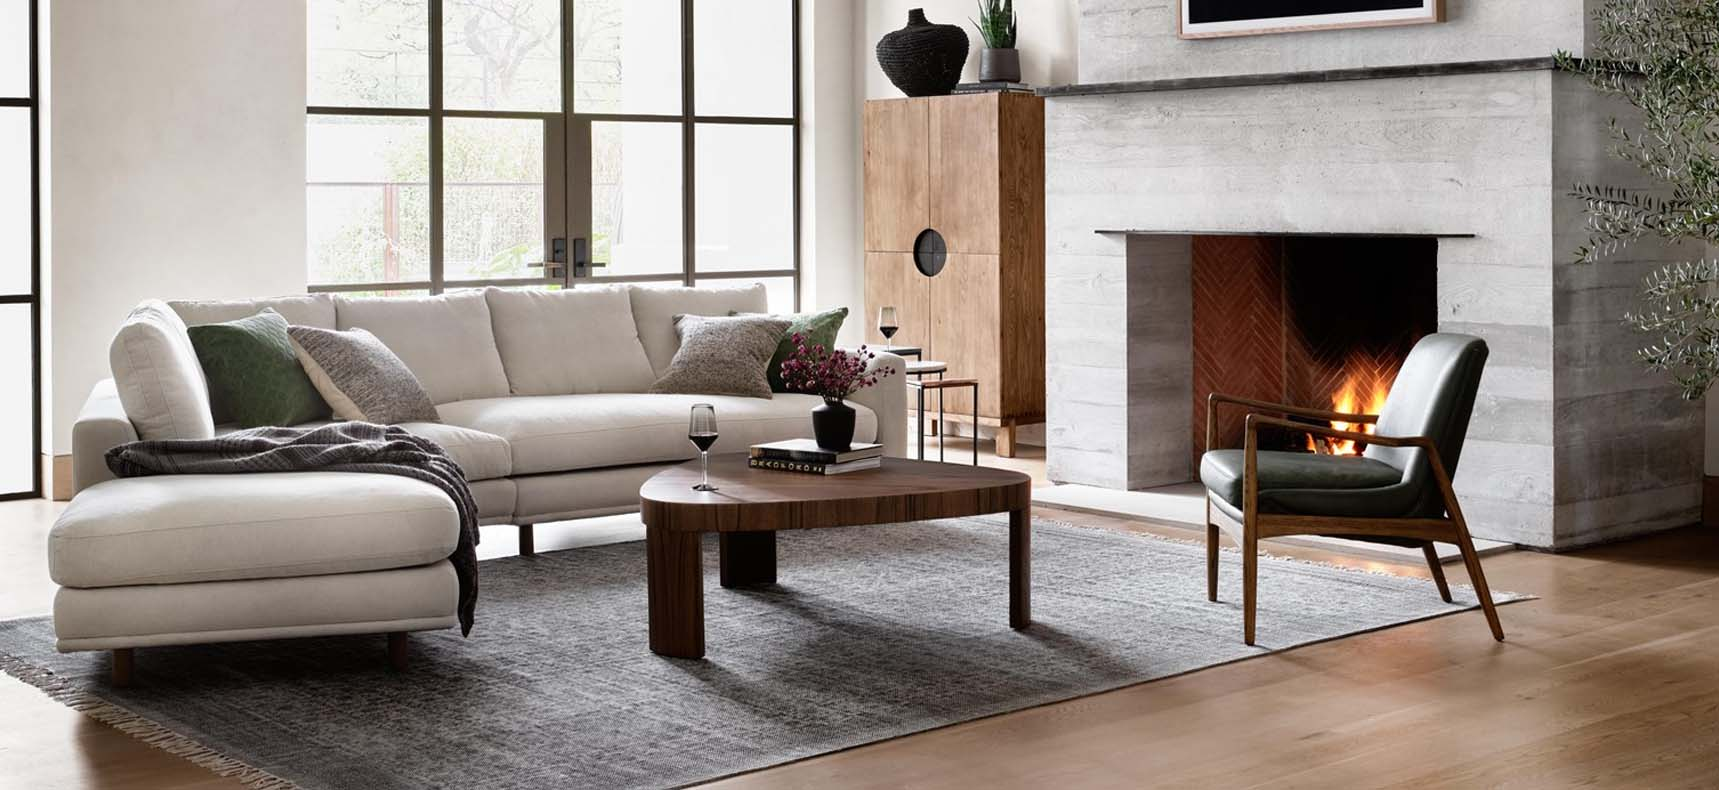 Picture of furniture